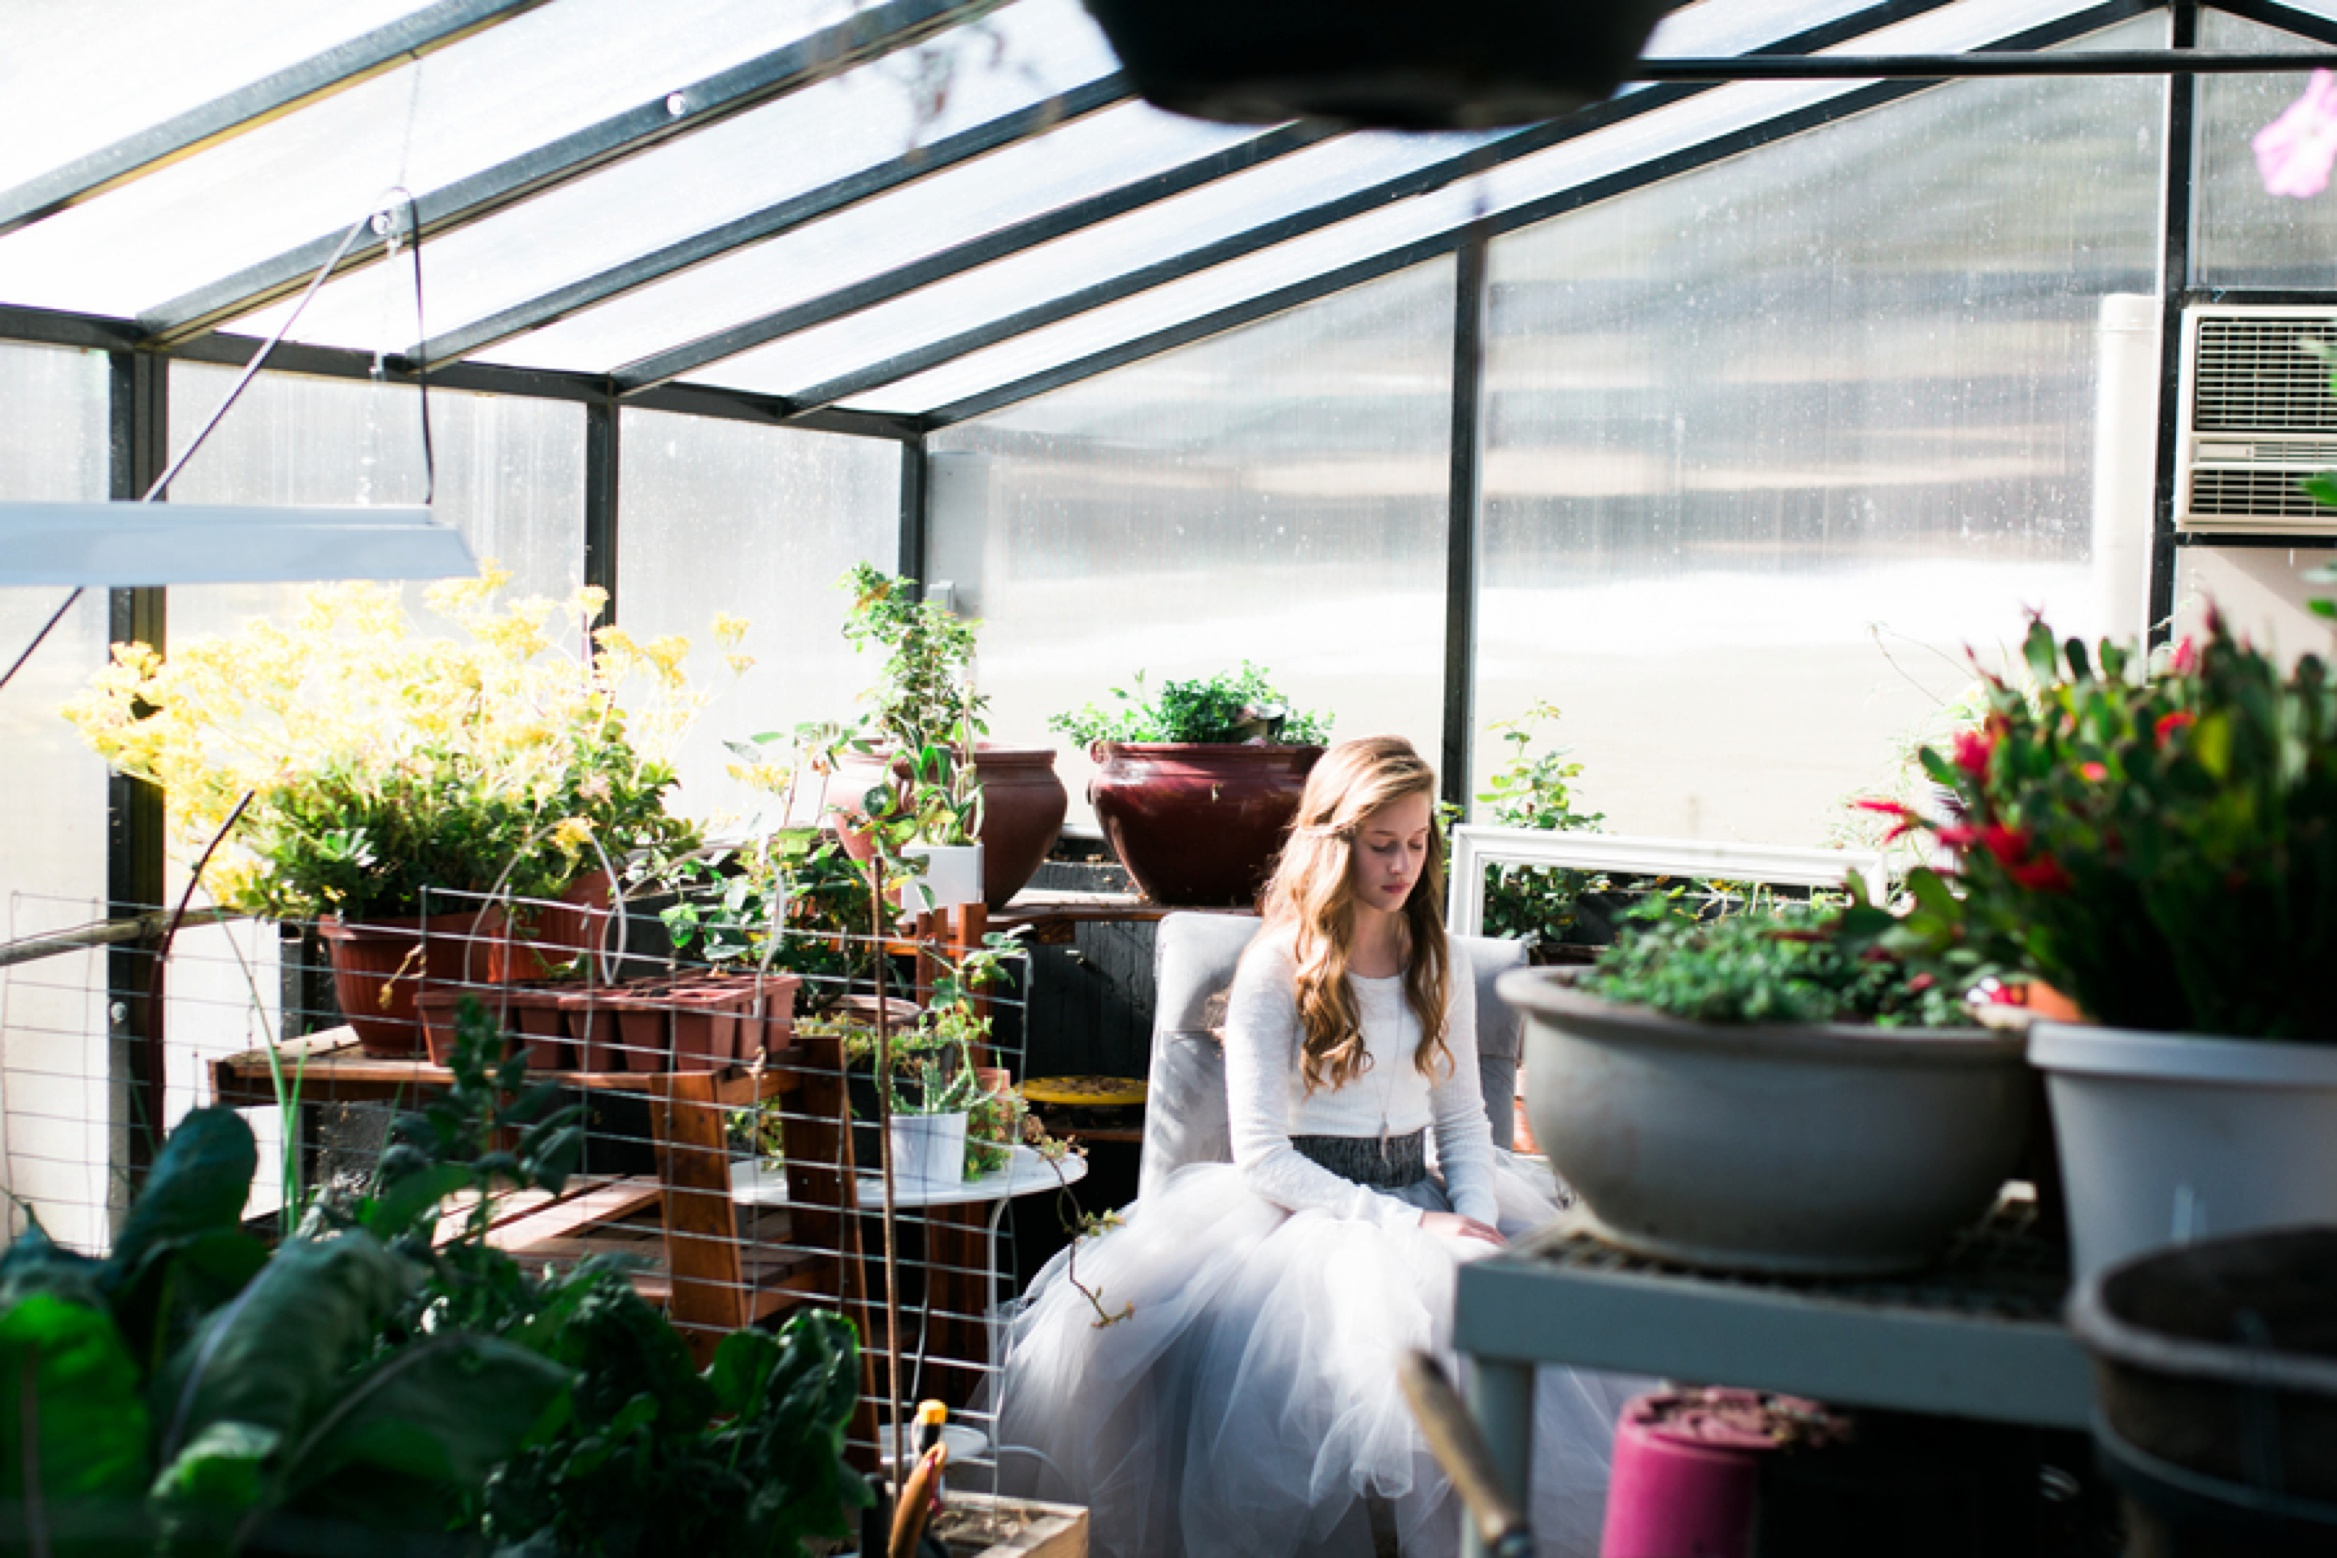 styled teen pictures, teen picture ideas, tween pictures, Whimsical Greenhouse Portrait